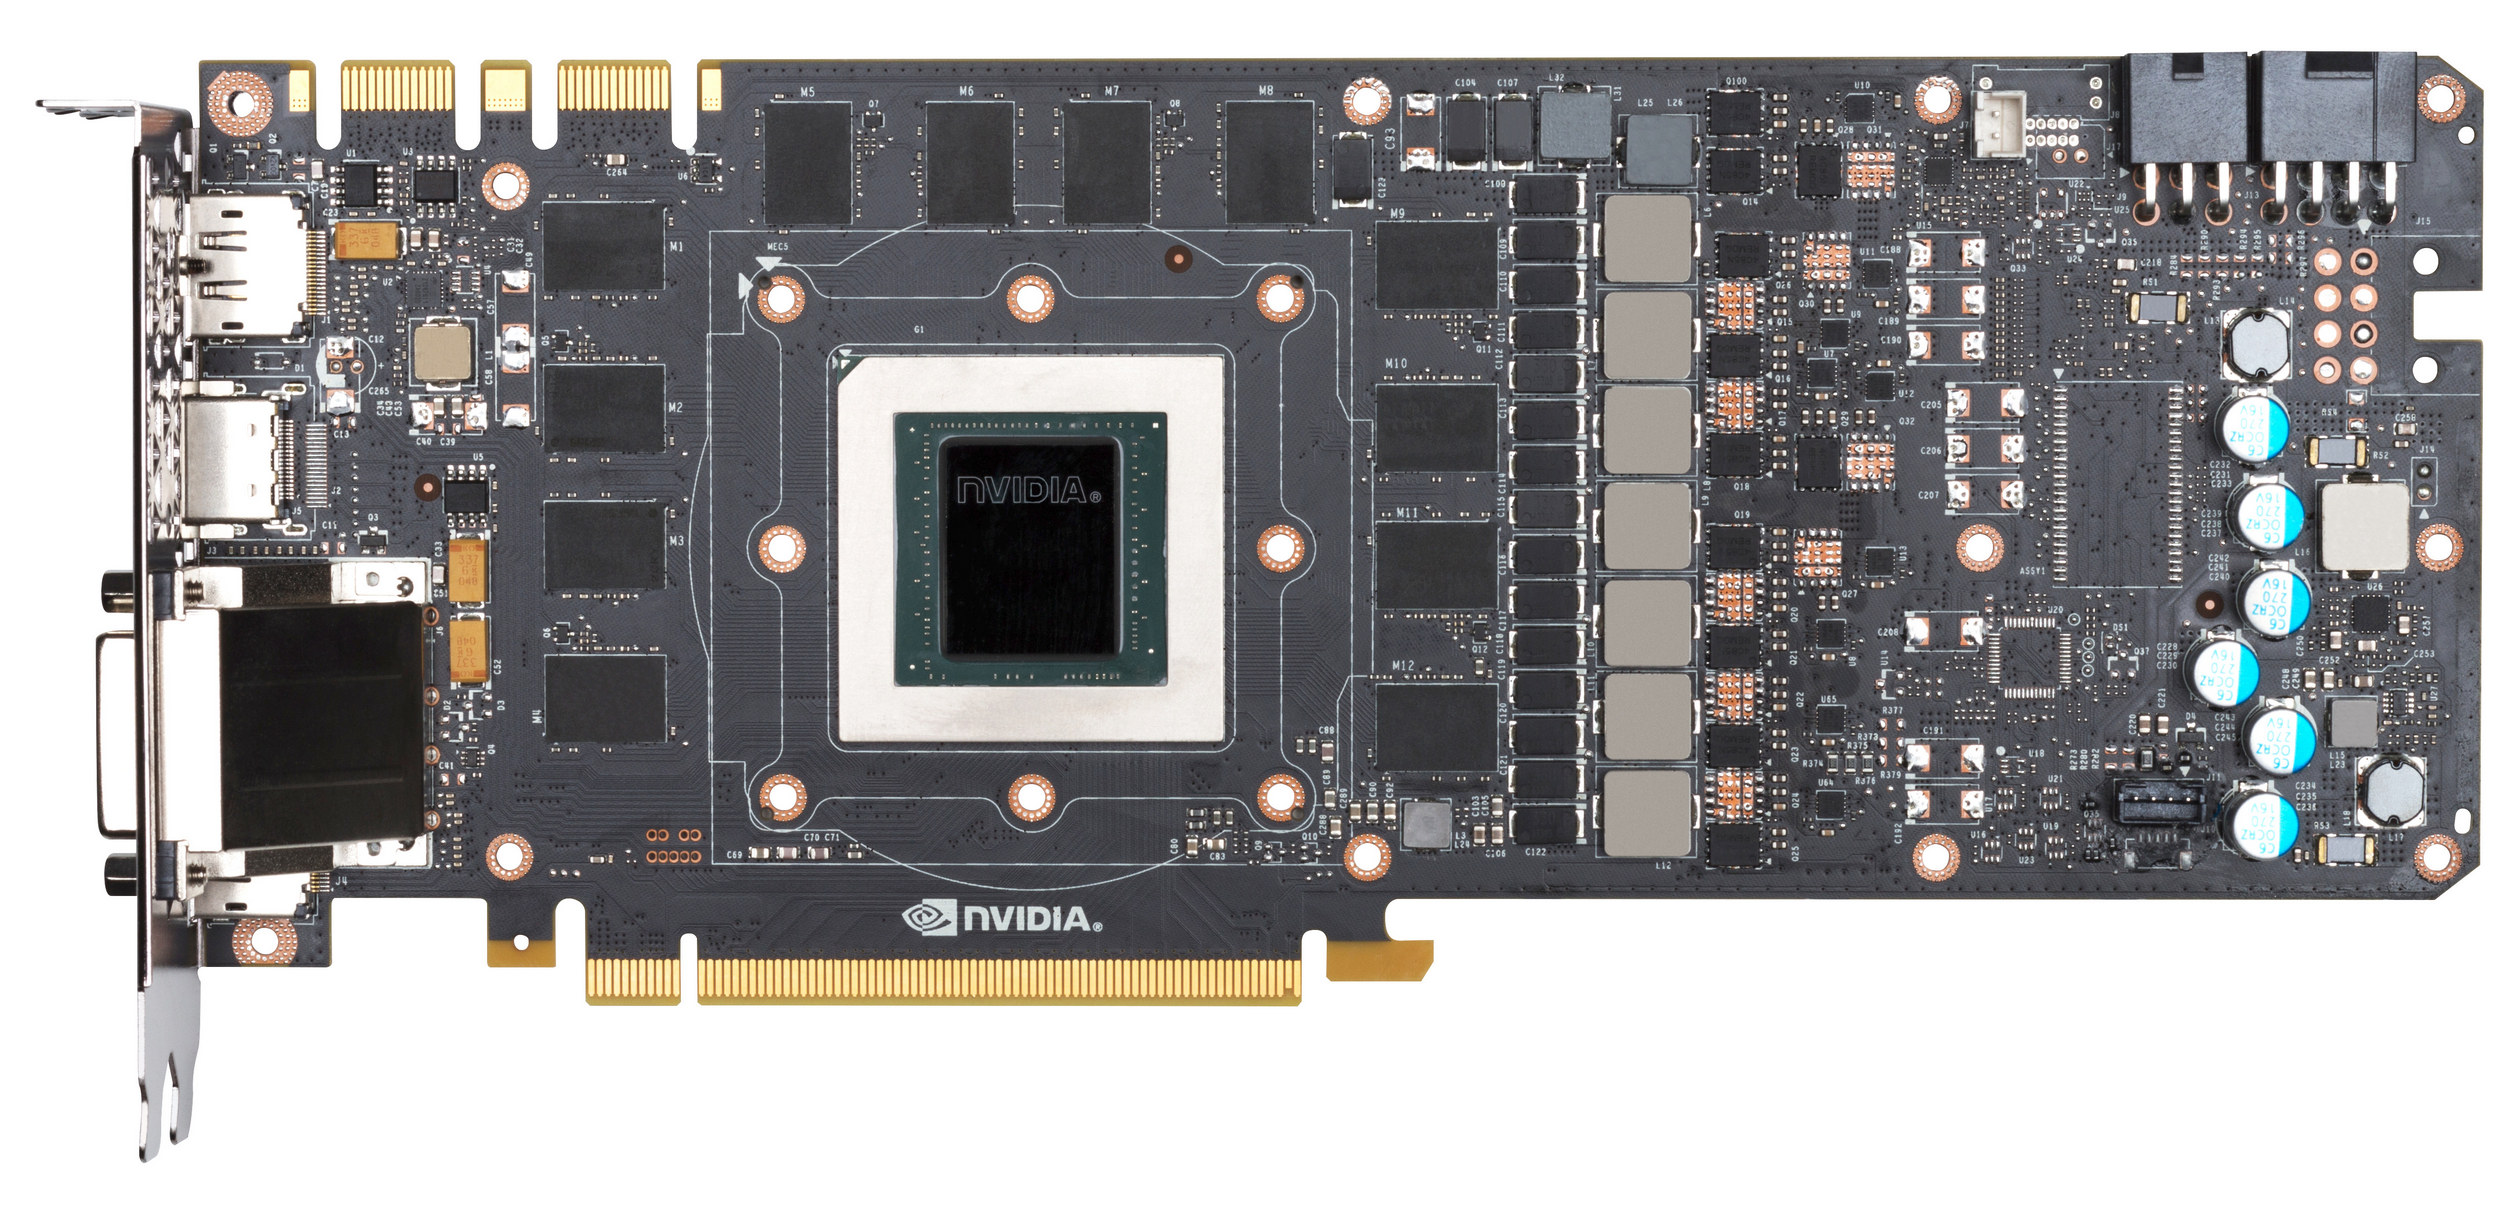 Nvidia confirms high end geforce gtx 1080 ti graphics card the titan x features the high end gp102 chip with insane amounts of horse power publicscrutiny Images